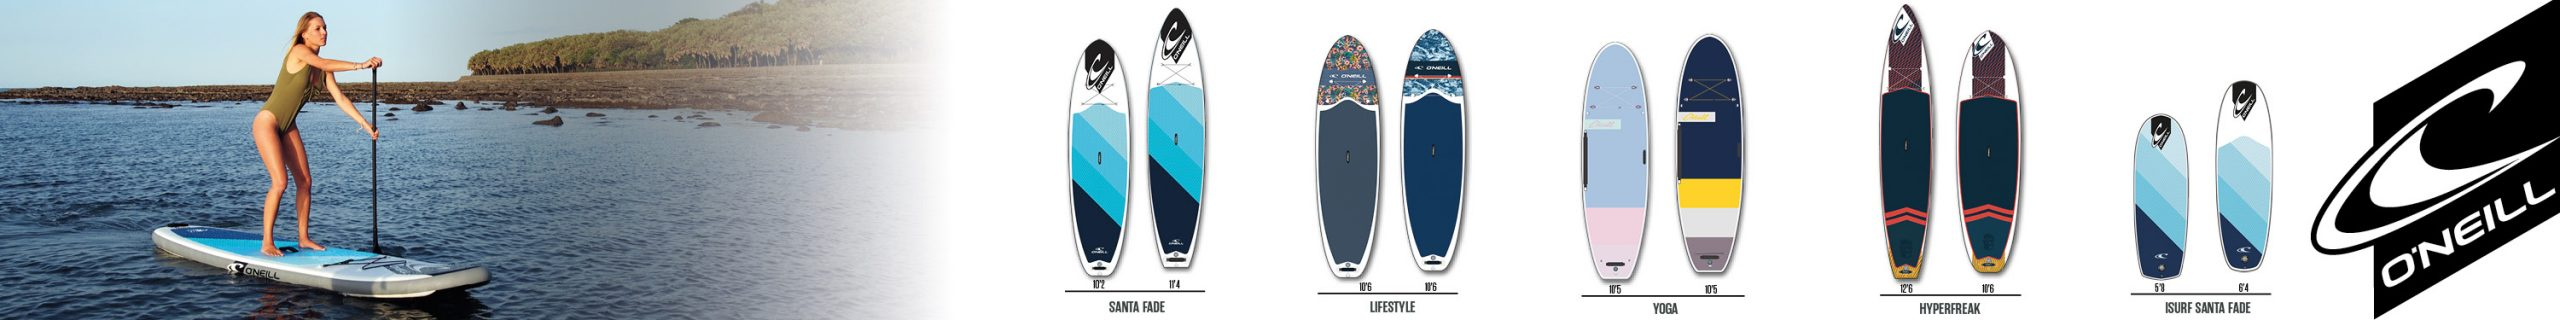 O'Neill SUP Fall 18